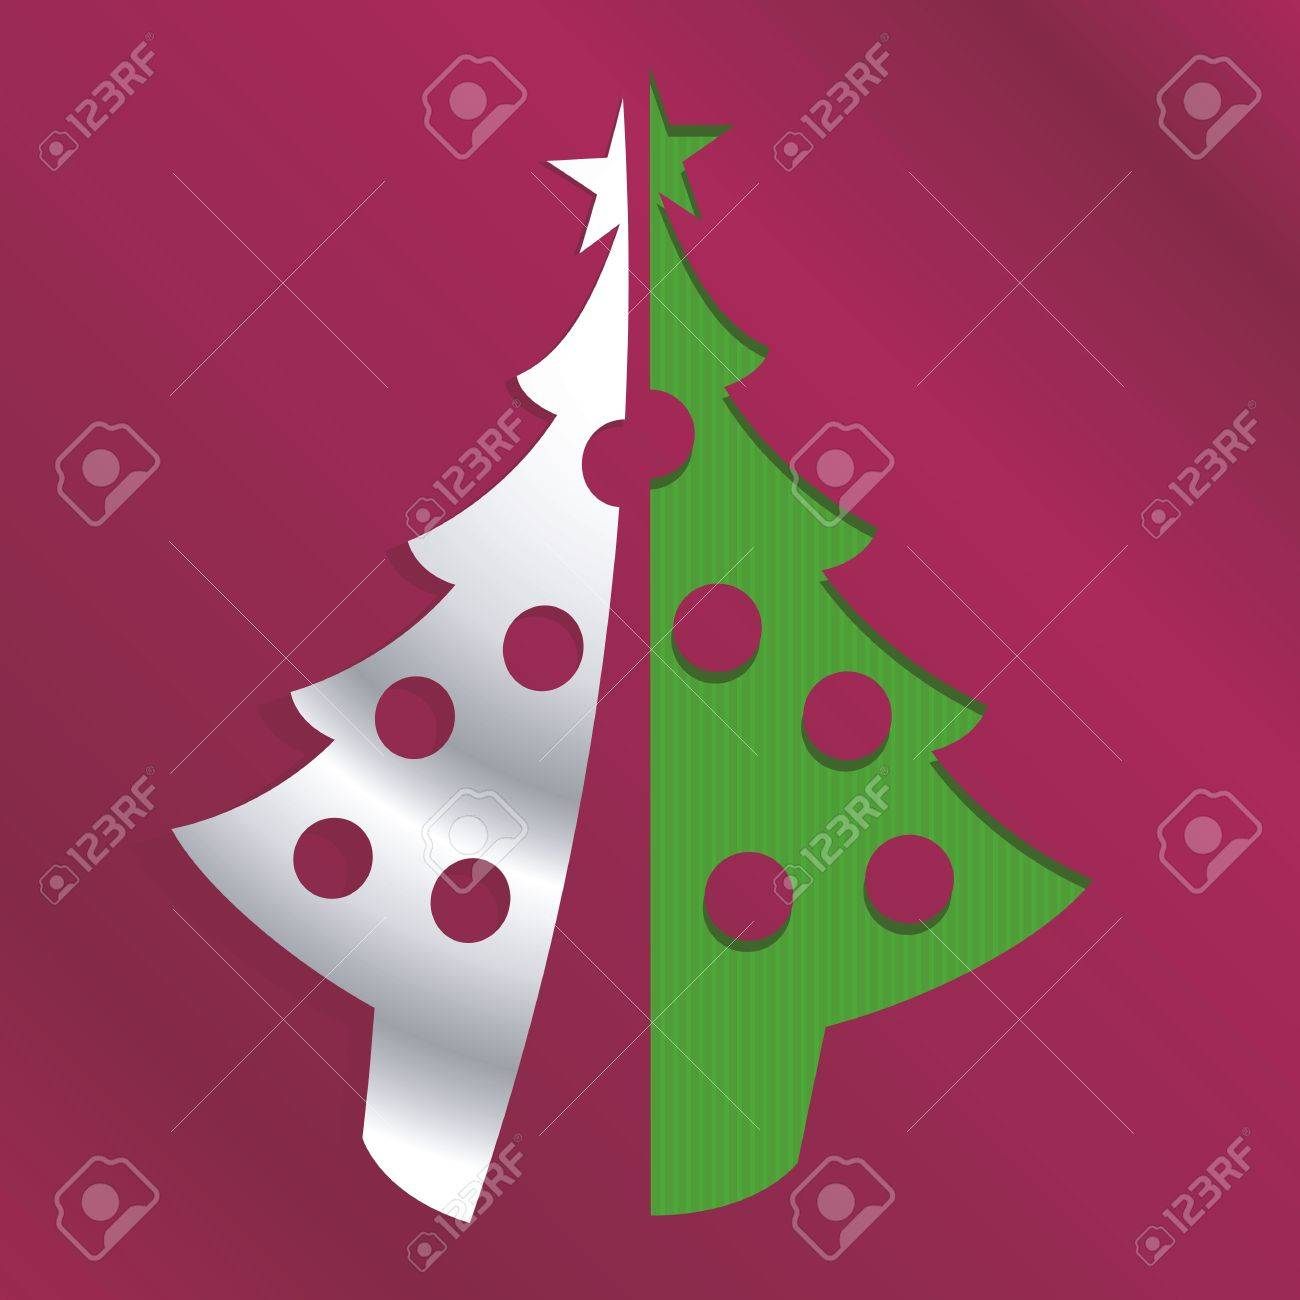 abstract christmas tree icon cut out from background Stock Vector - 15863517